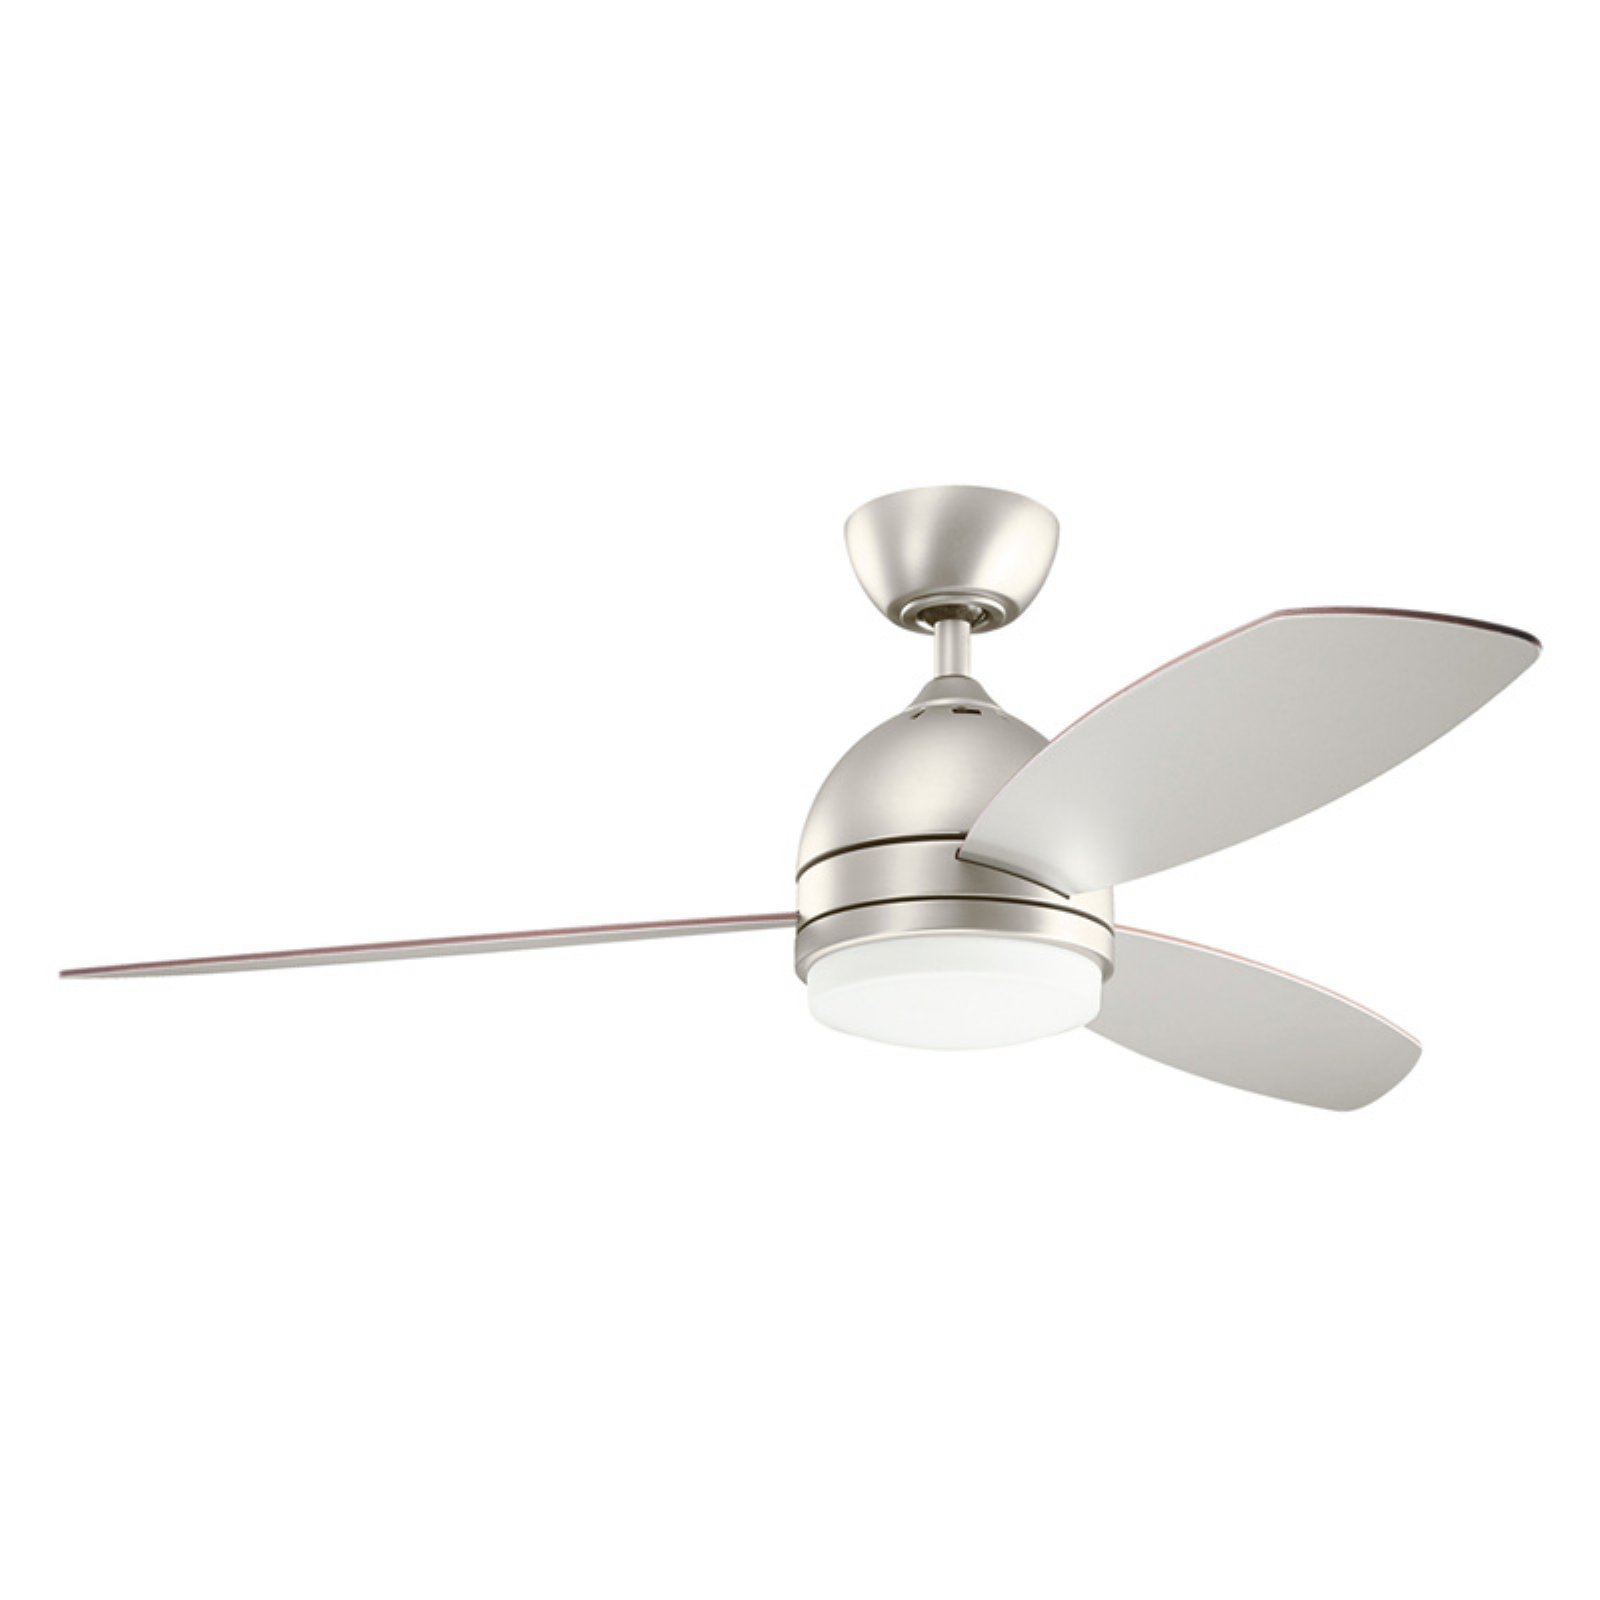 Kichler Vassar 52 in LED Indoor Ceiling Fan Walmart